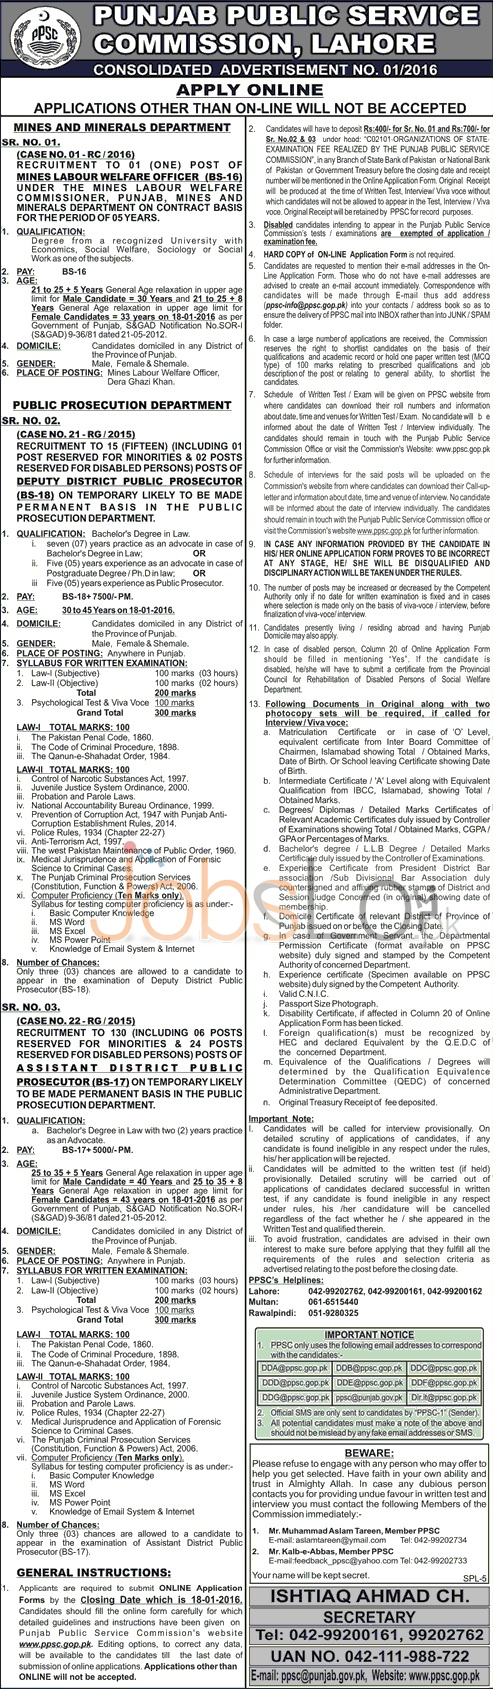 Vacant Situations in Punjab Public Service Commission, Lahore 2016